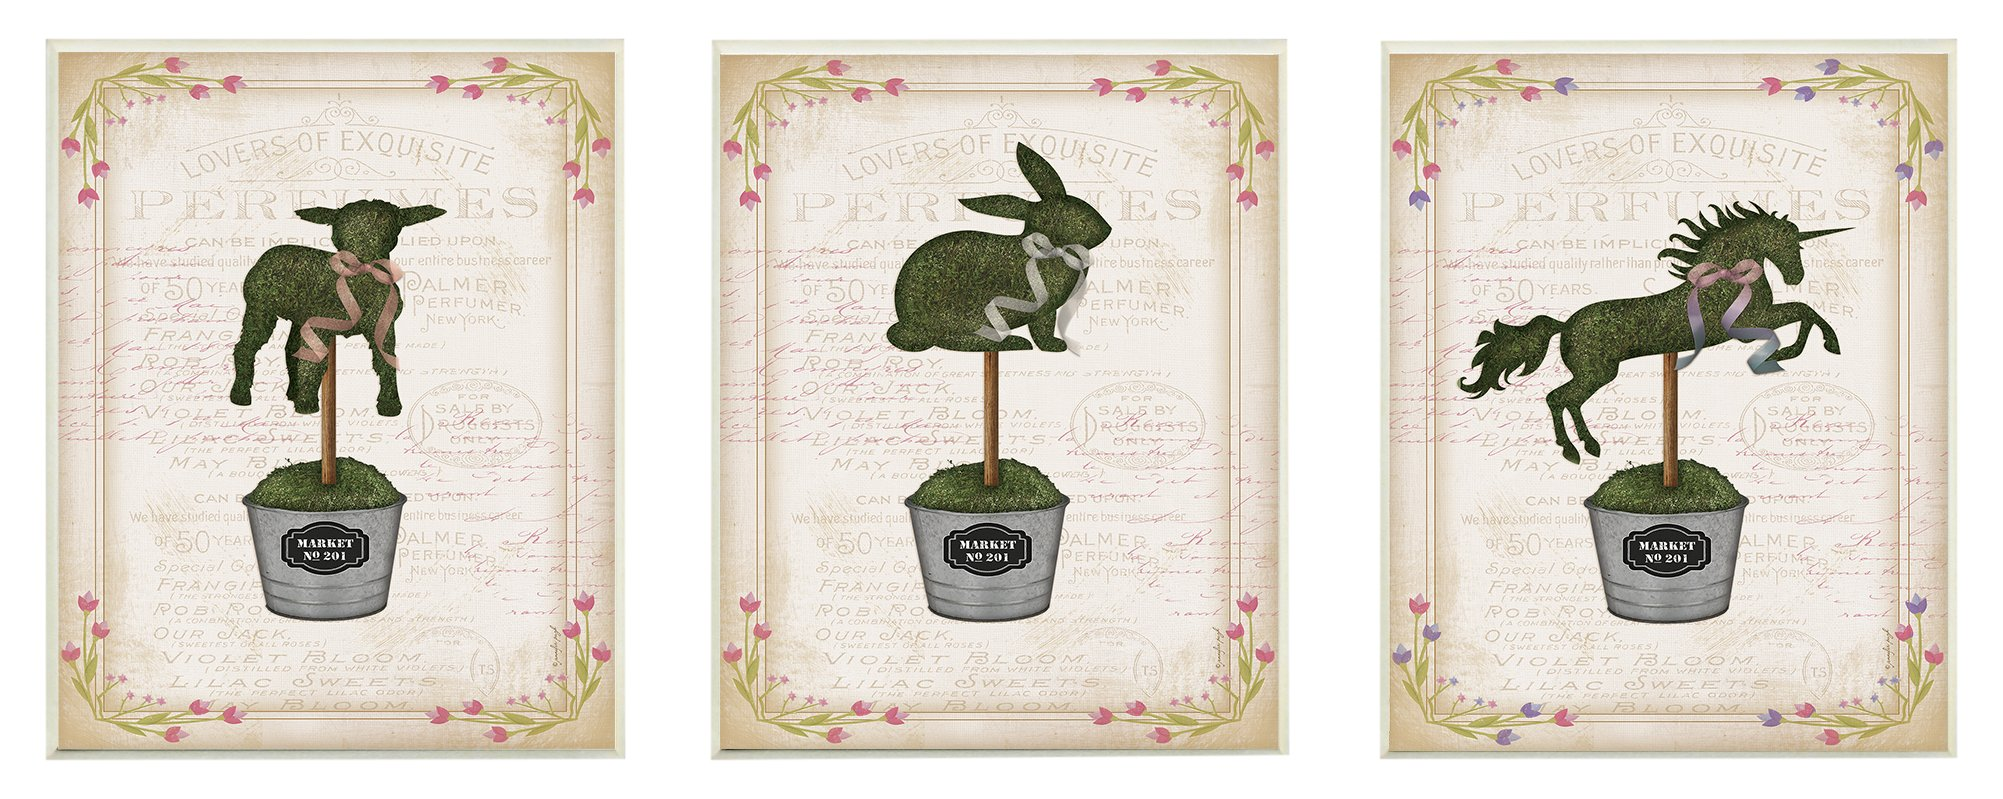 Stupell Home Décor English Garden Topiary Animals 3pc Wall Plaque Art Set, 10 x 0.5 x 15, Proudly Made in USA